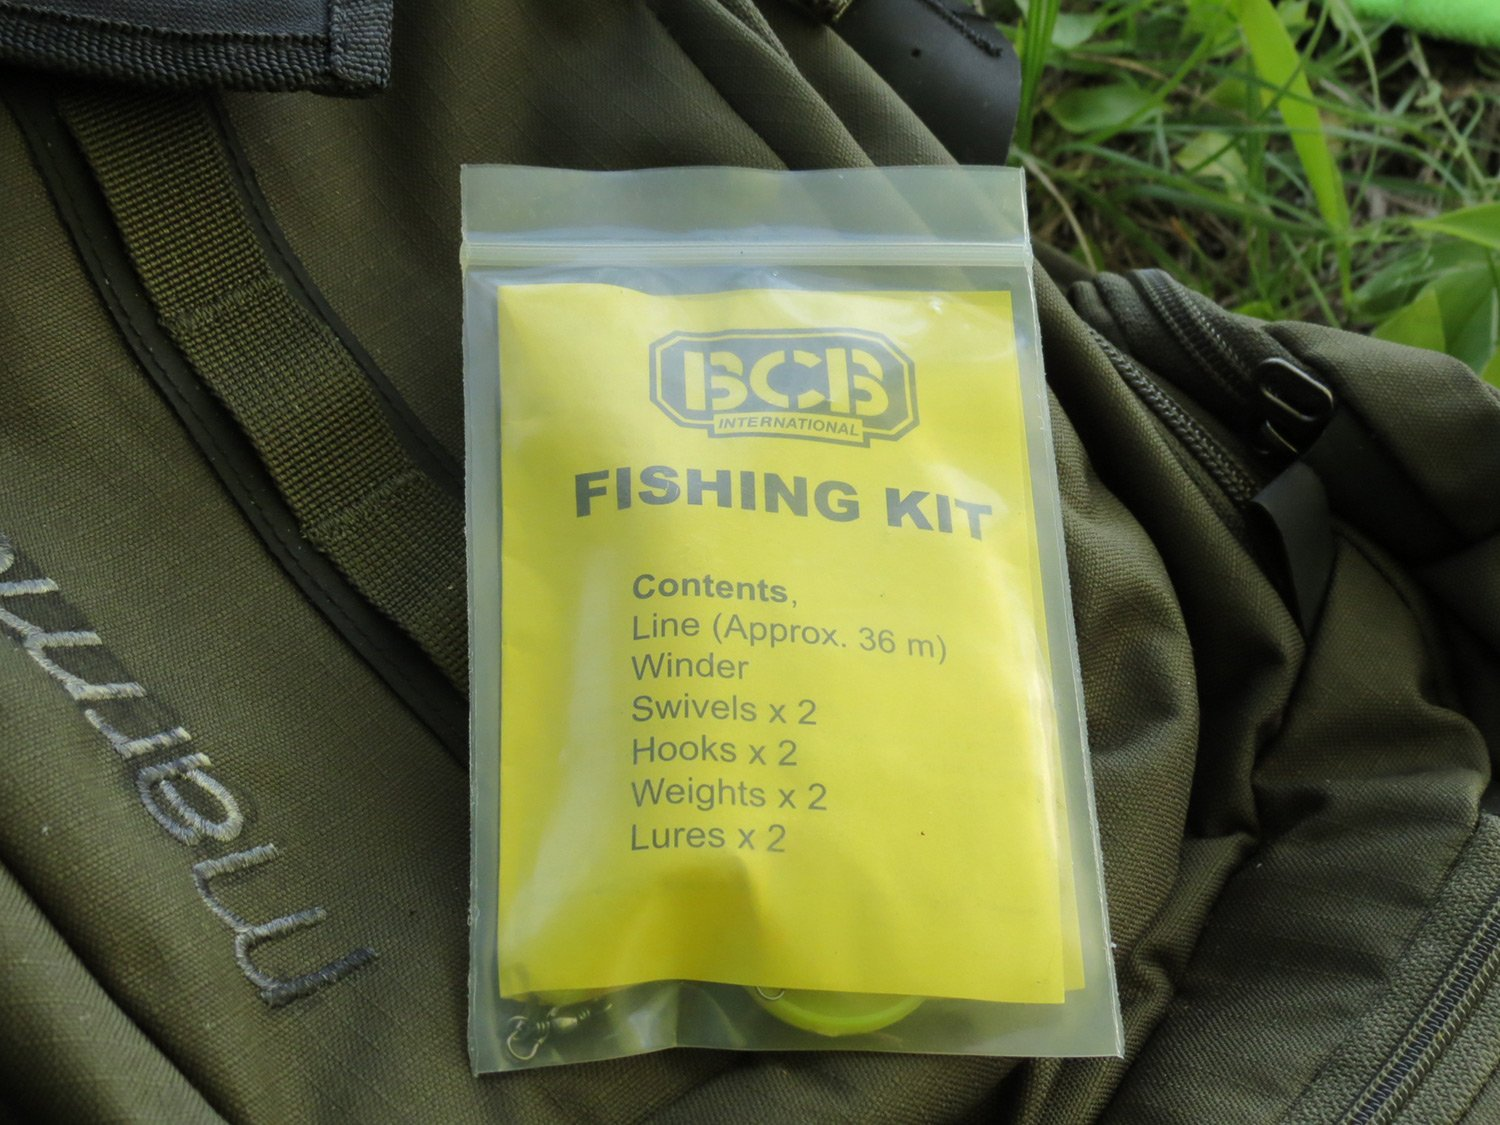 BCB Survival Fishing Kit, with line and lures: Amazon co uk